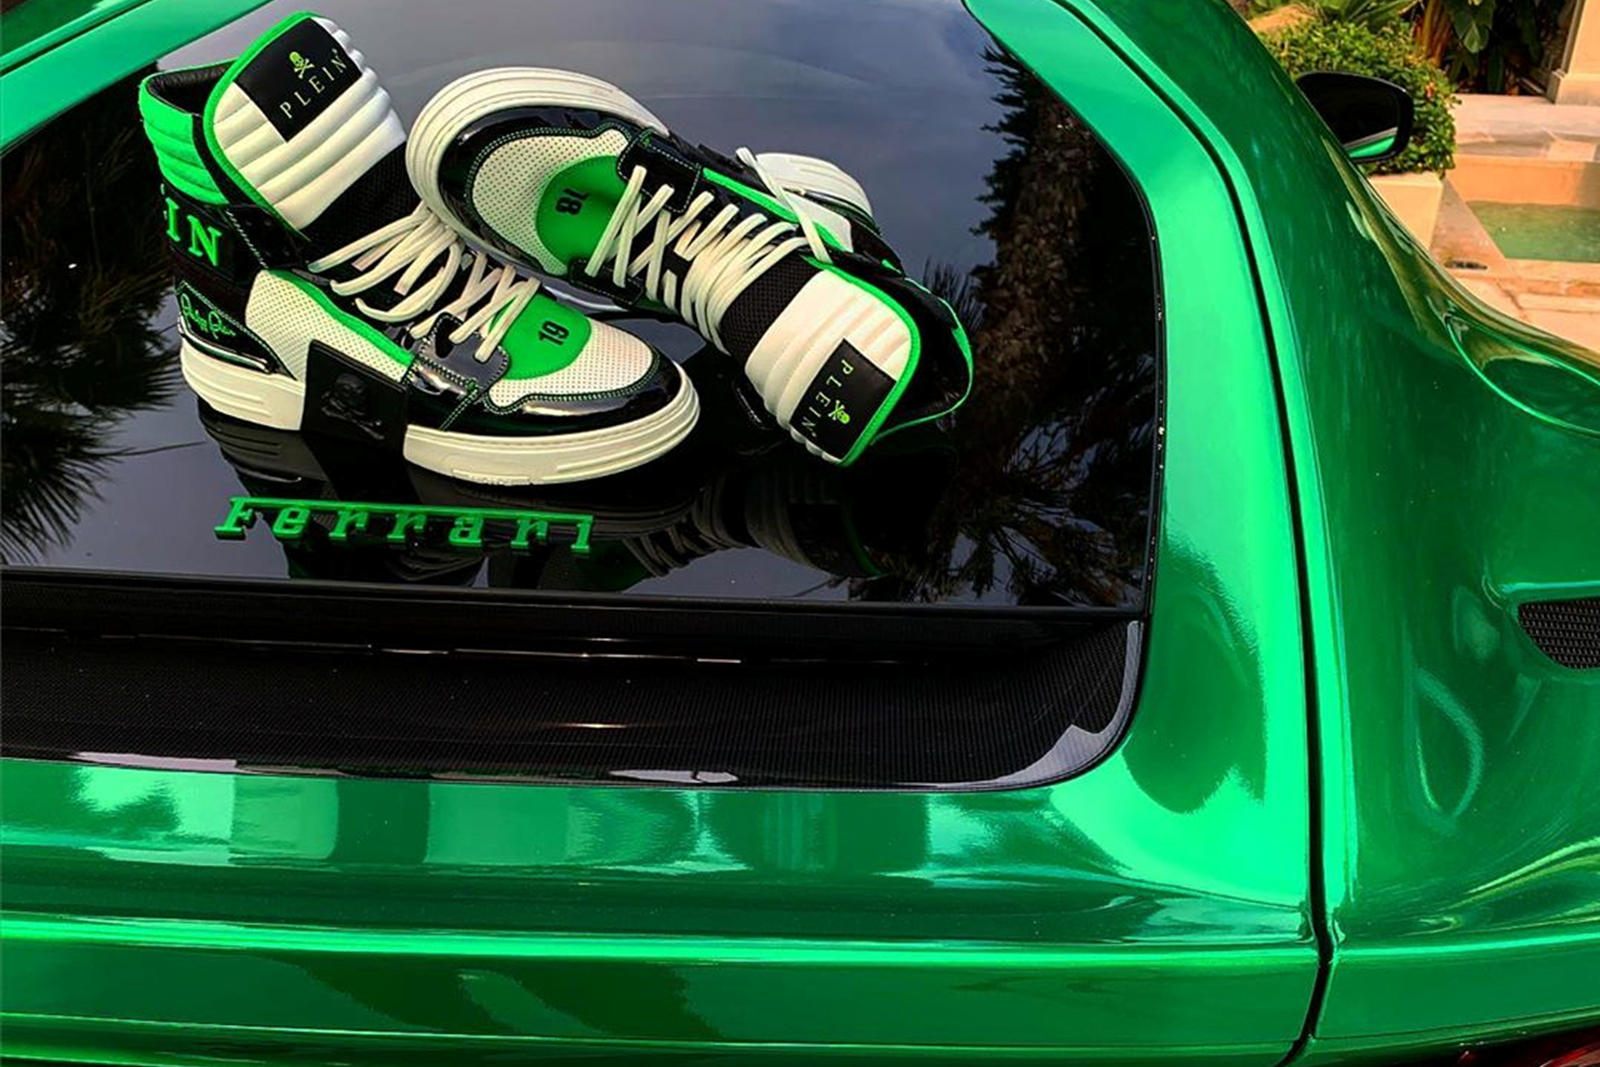 Fashion designer may get sued by Ferrari for posting pics of his shoes On top of his own Ferrari